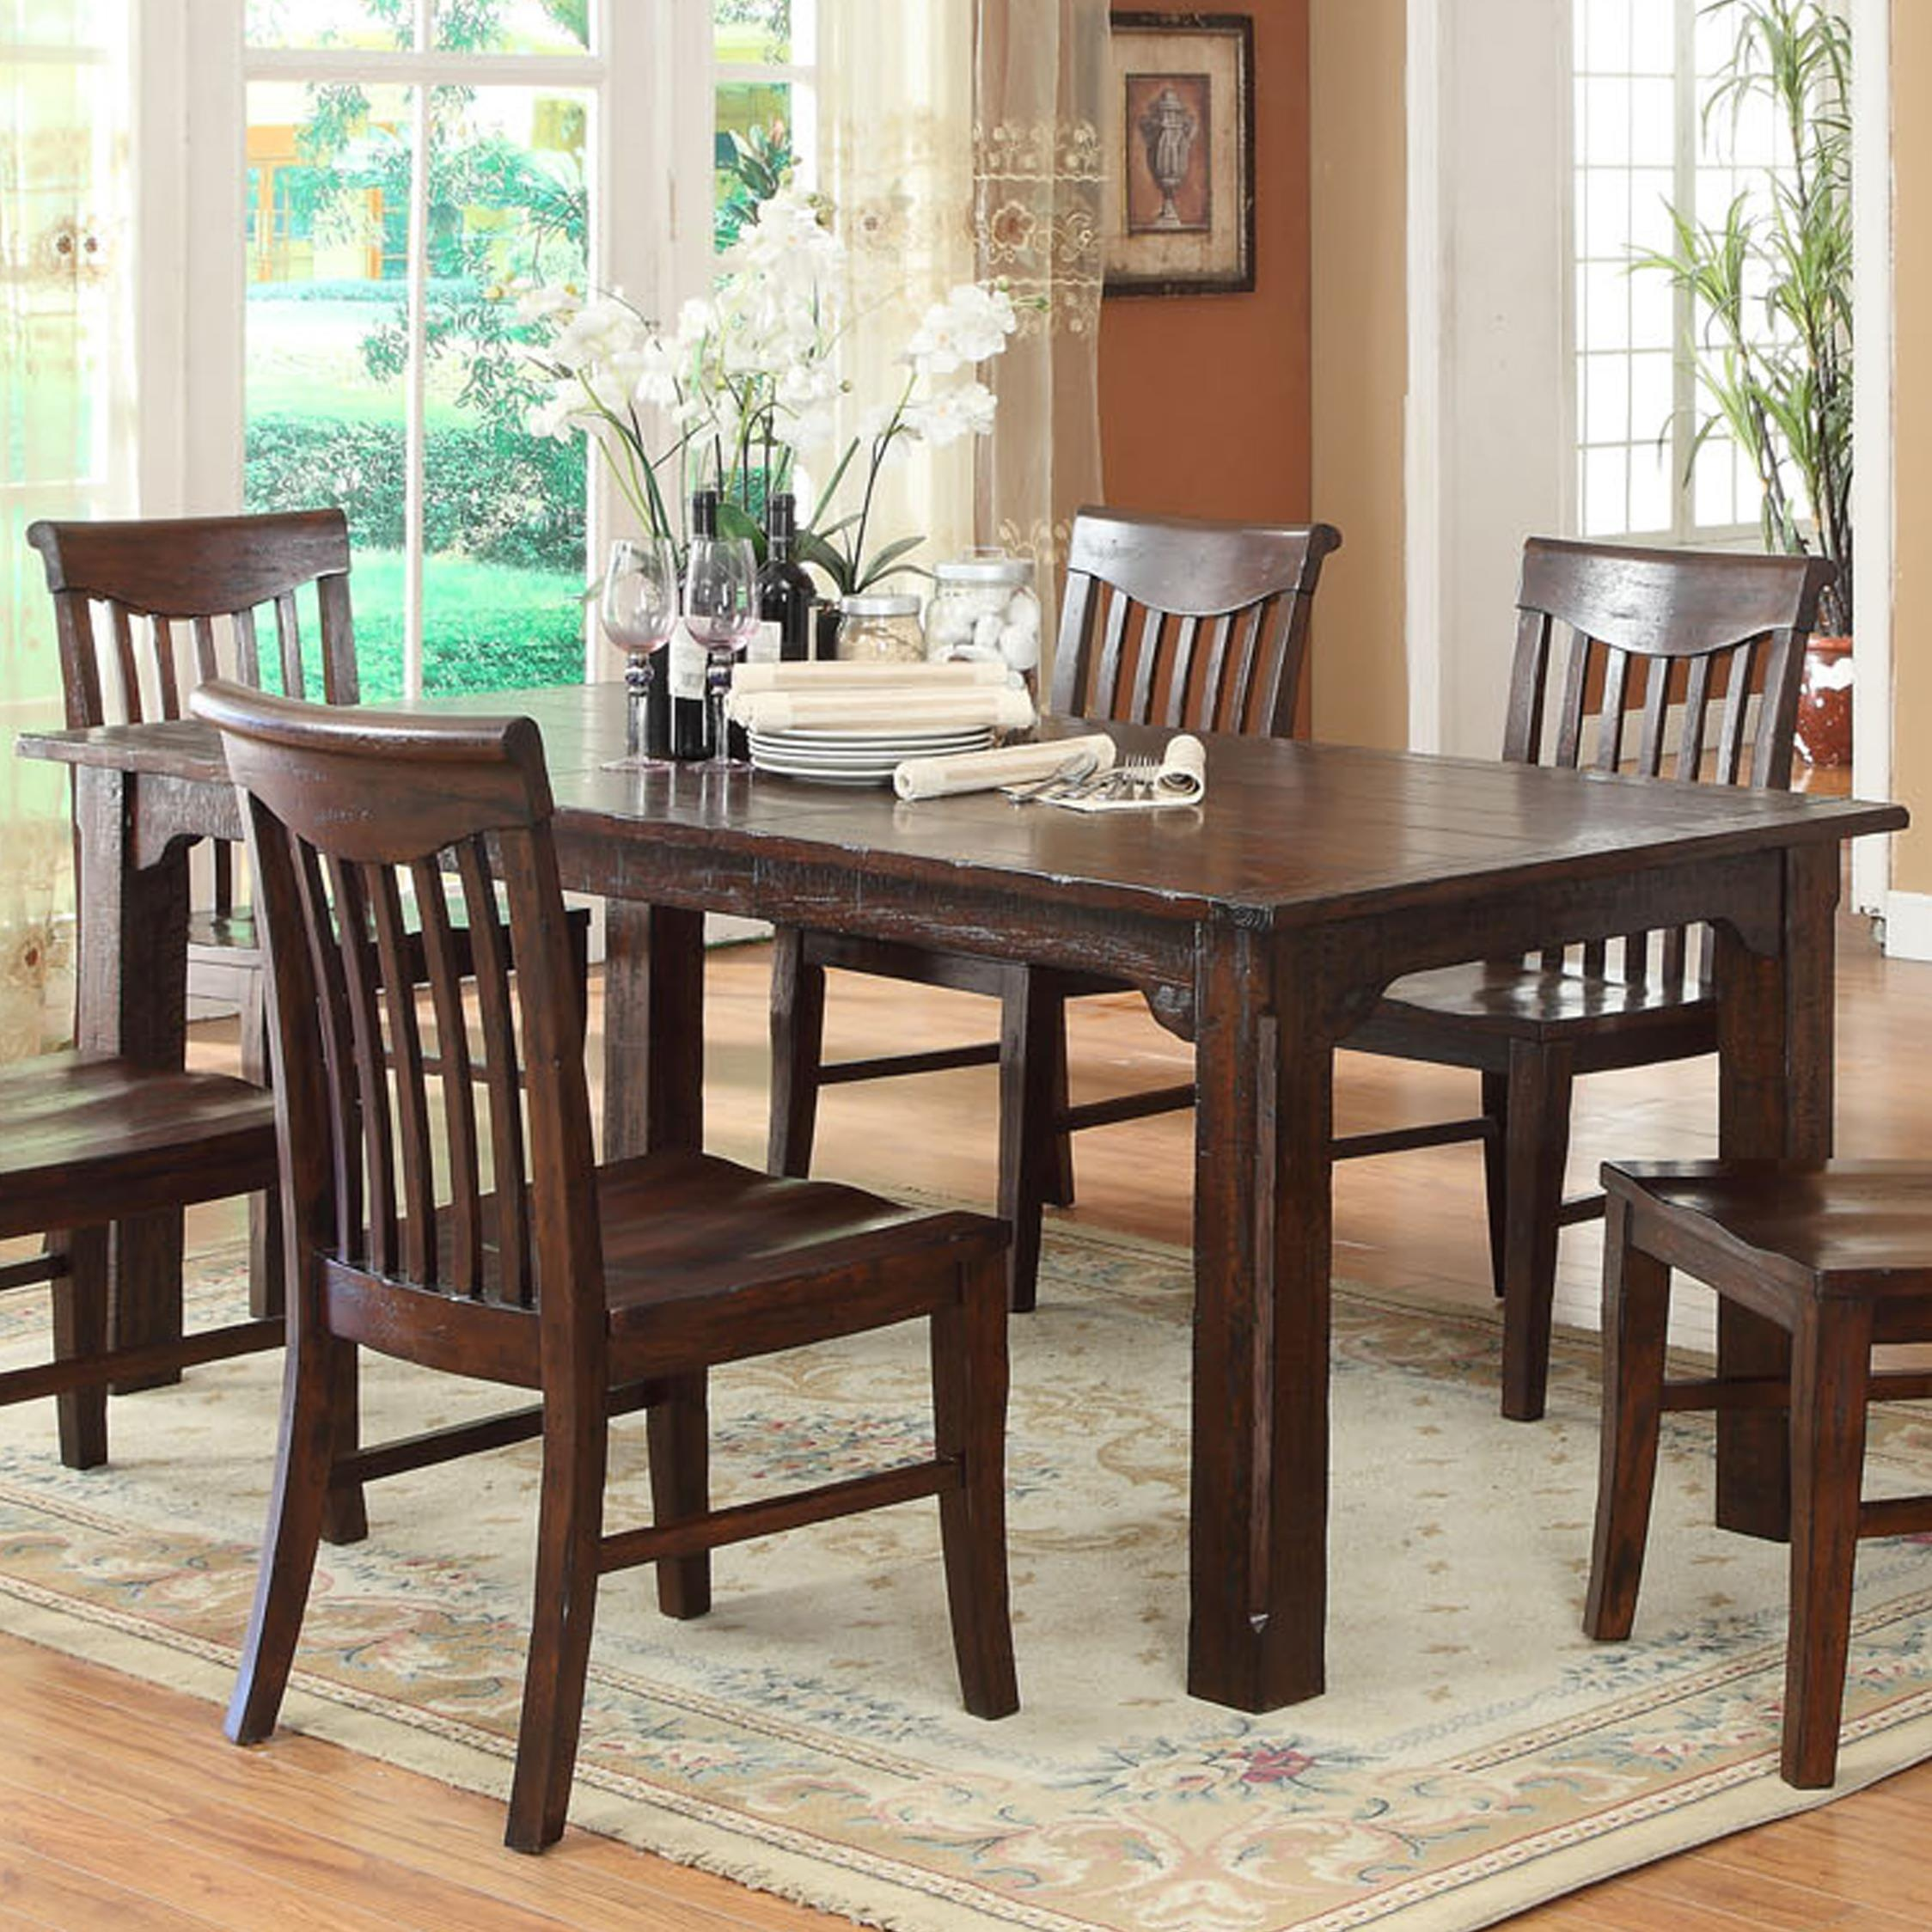 "E C I Furniture Gettysburg Dining Table with an 18"" Leaf"